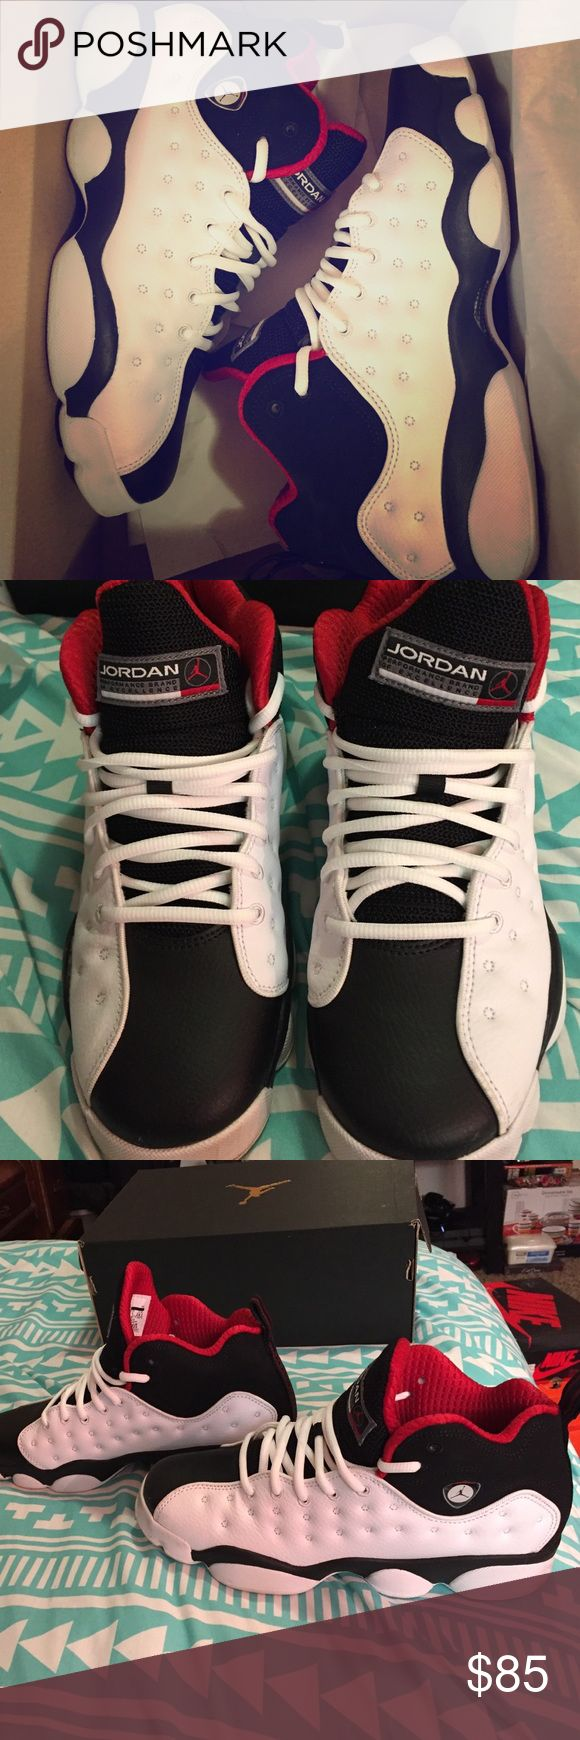 Jordan Jumpman Team 2 BG  Jordan Jumpman Team 2 BG. Black, white, and varsity red. Size 6.5 Y. Fits like a 8-8.5 in women's. Only worn once. The soles are dirty, but otherwise in good condition. Willing to trade & open to offers. Jordan Shoes Sneakers